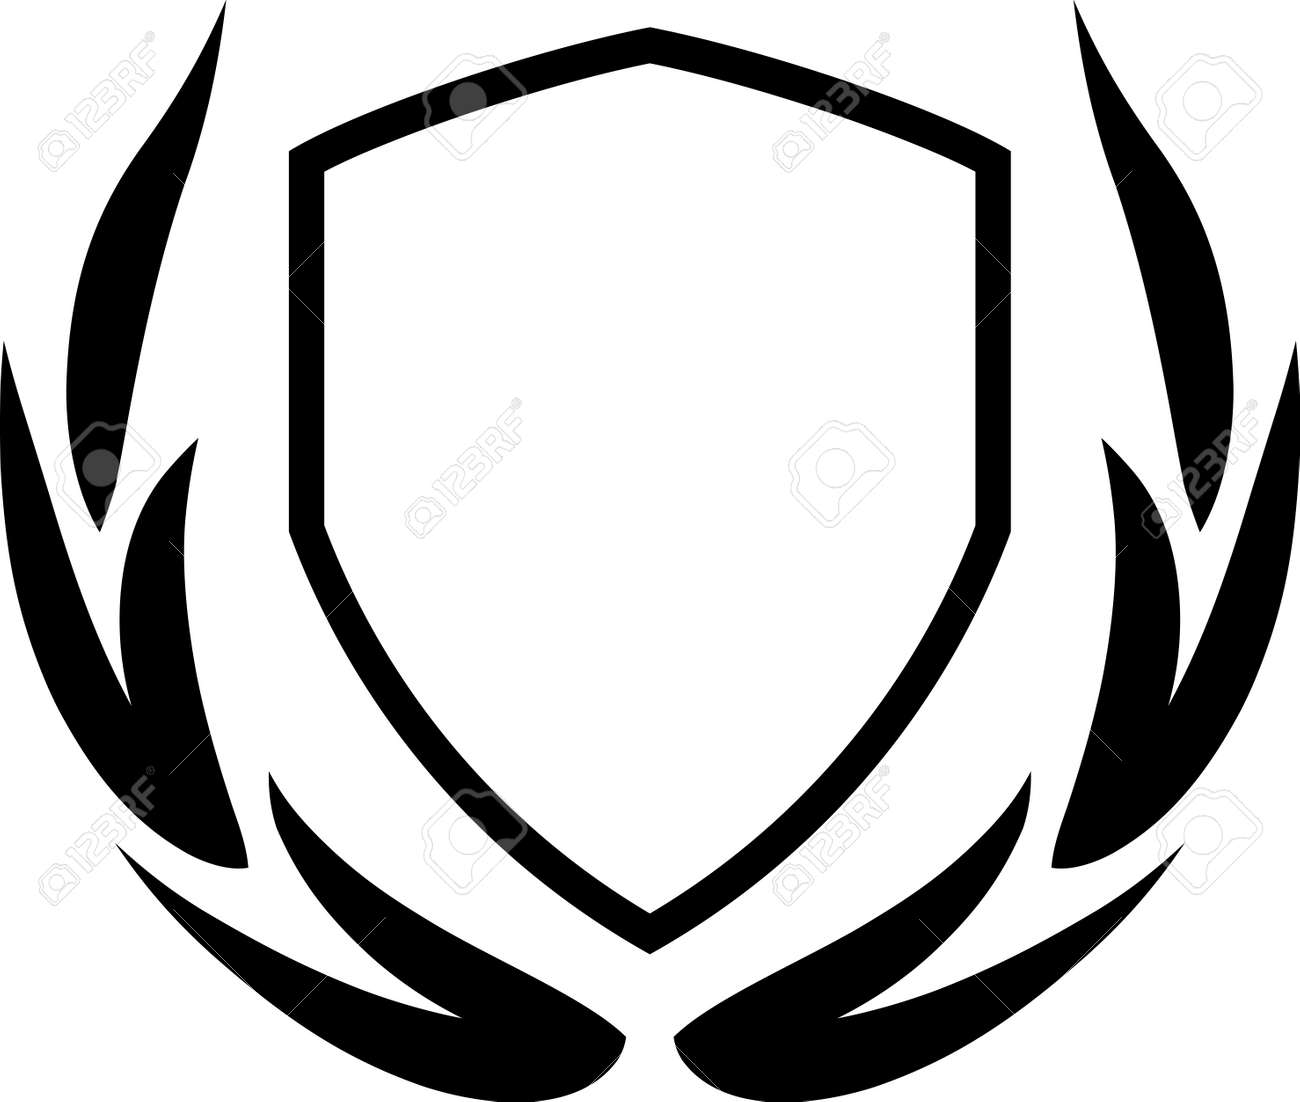 Vector coat of arms and laurel wreath isolated - 13596199